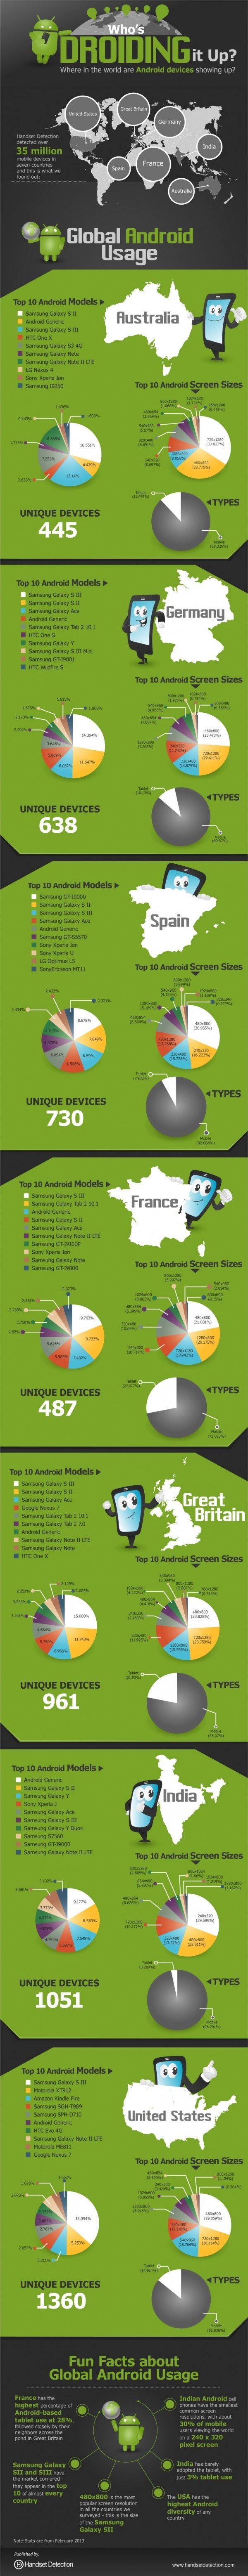 Where in the World are Android Devices Showing Up? [Infographic]